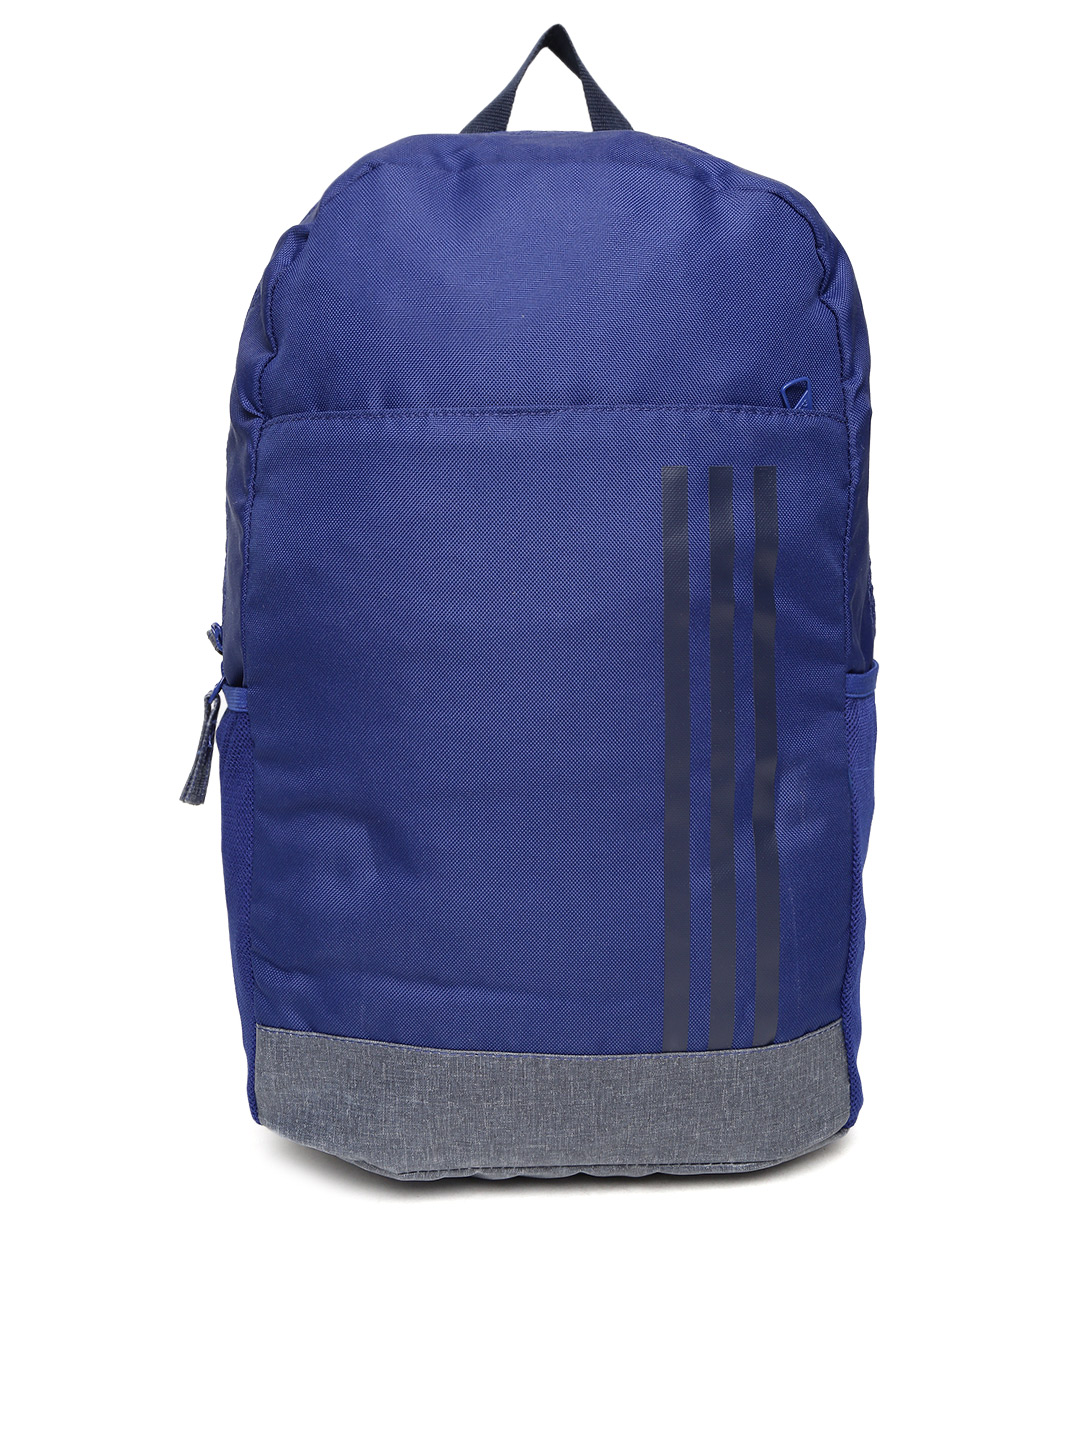 Men s Adidas Bags - Buy Adidas Bags for Men Online in India cd1465c9513c8